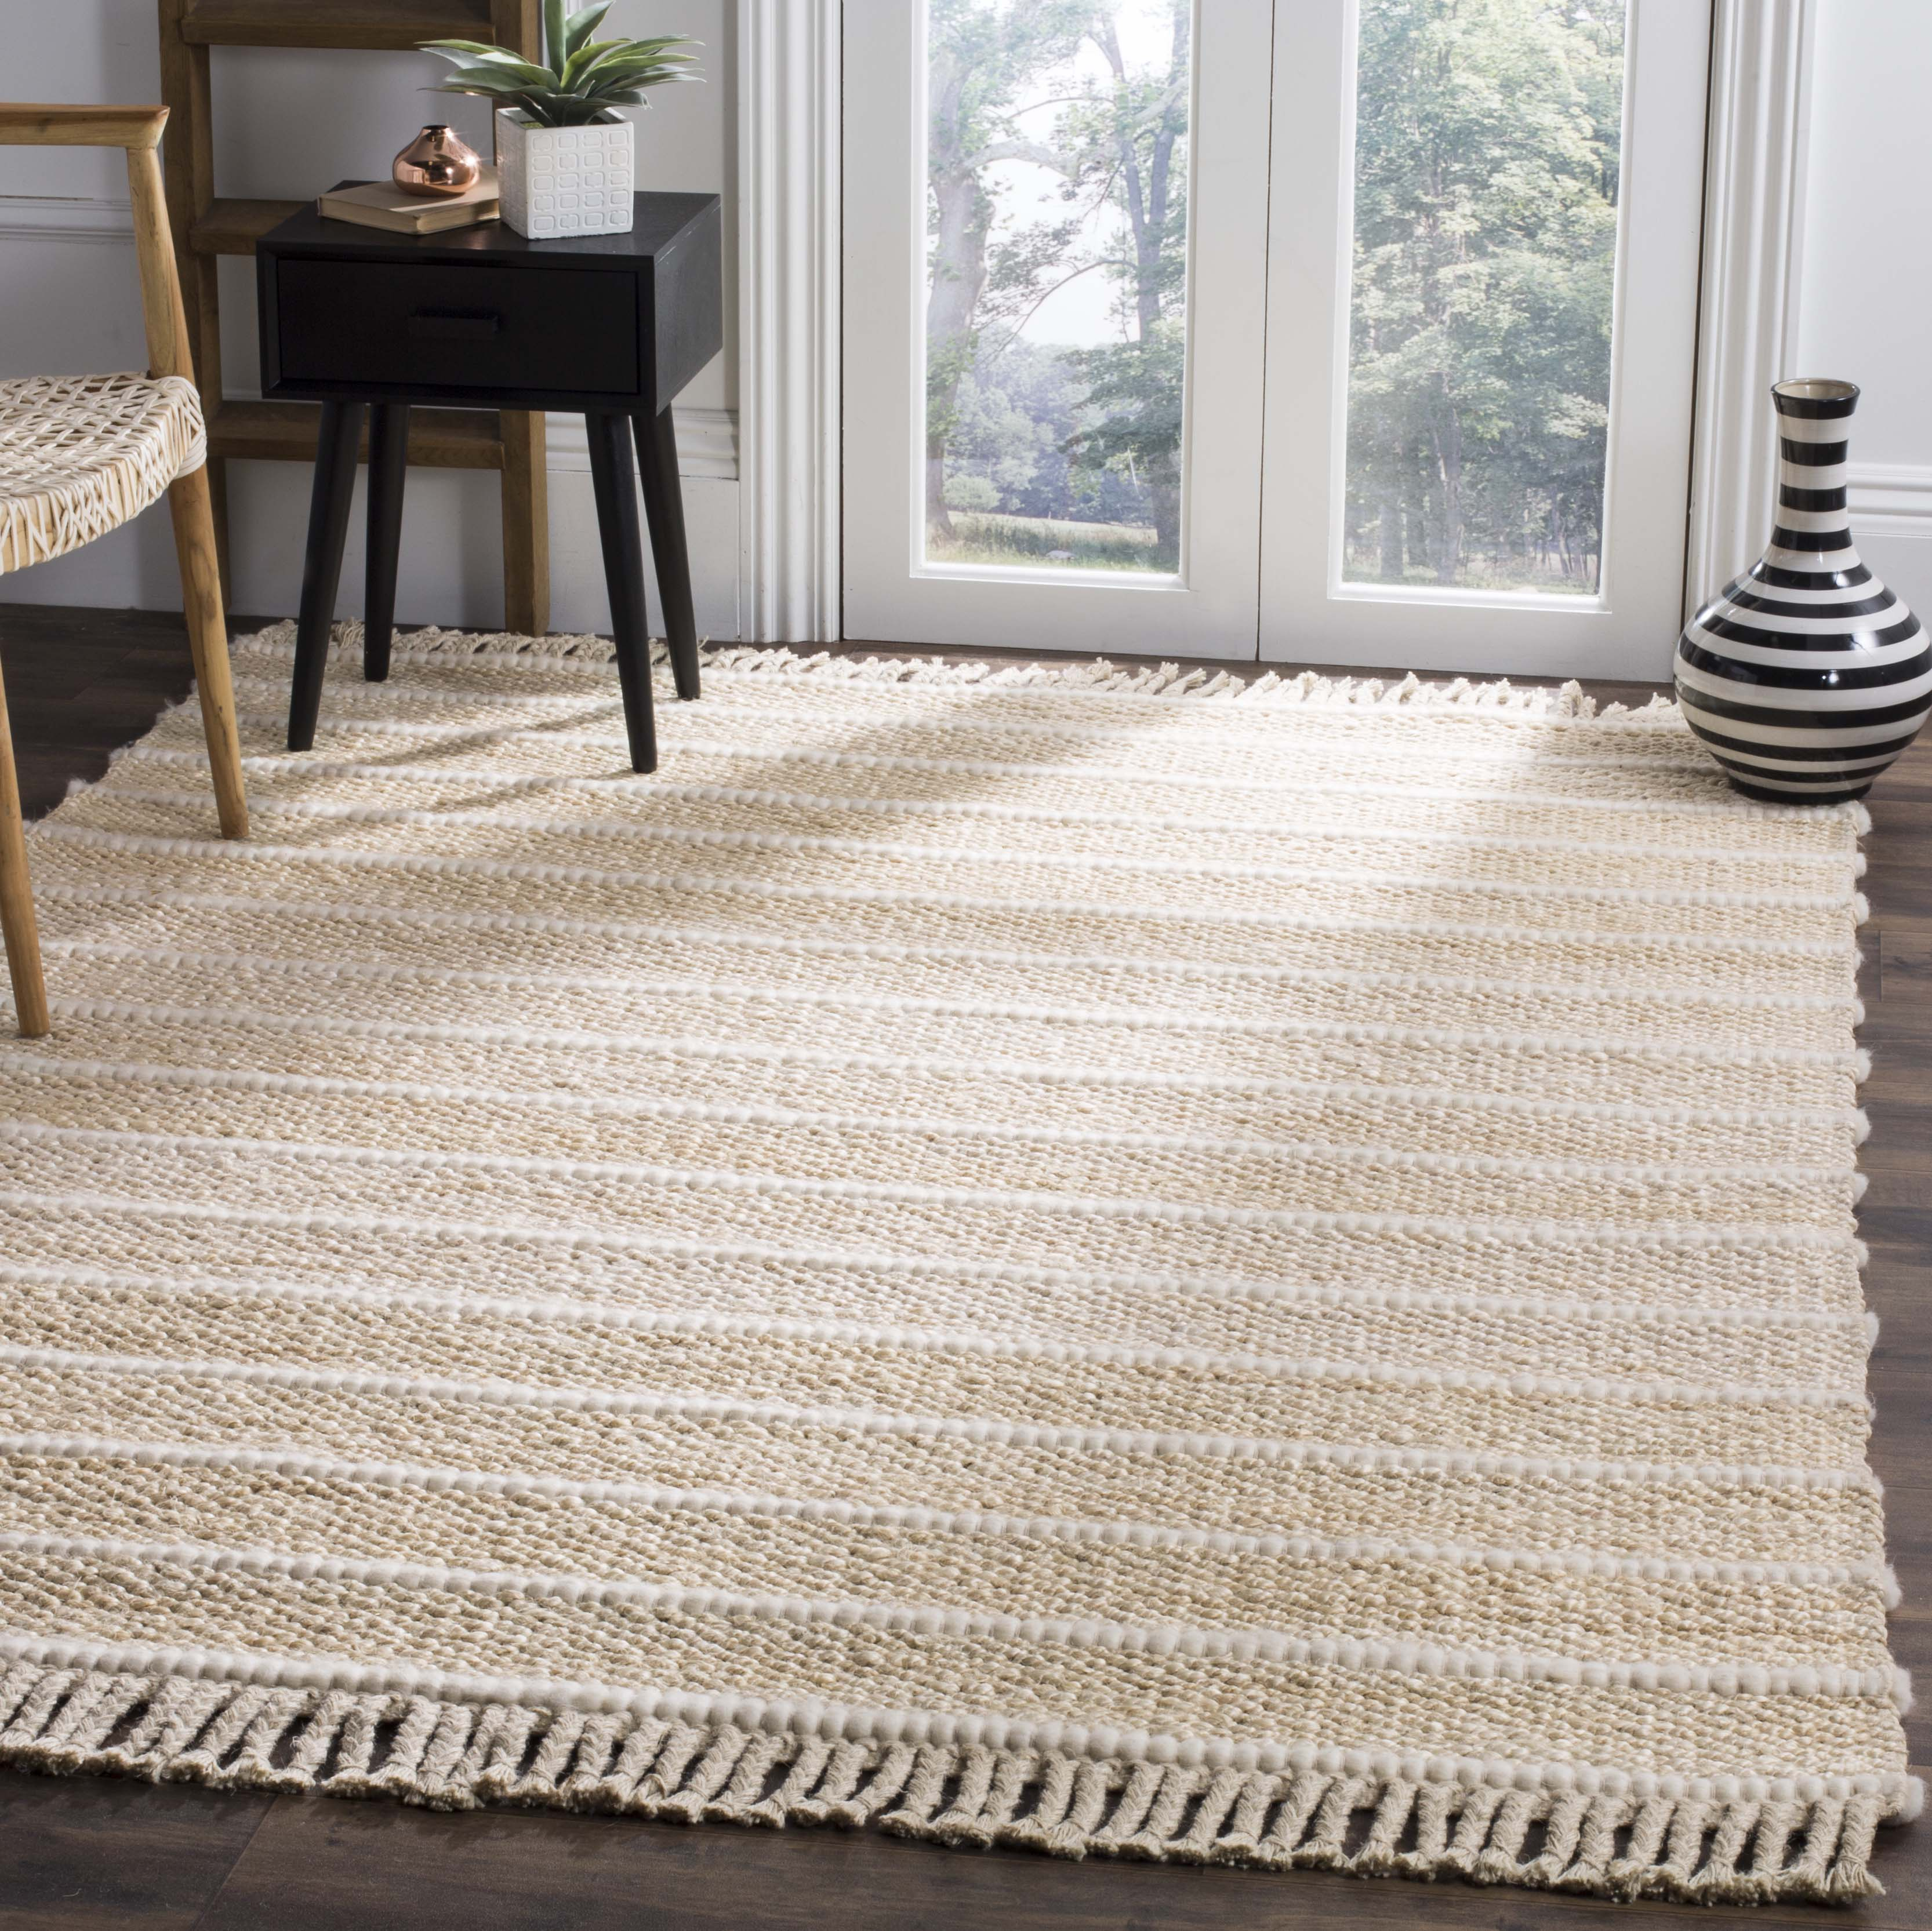 Safavieh Natural Fiber Carrie Braided Area Rug or Runner